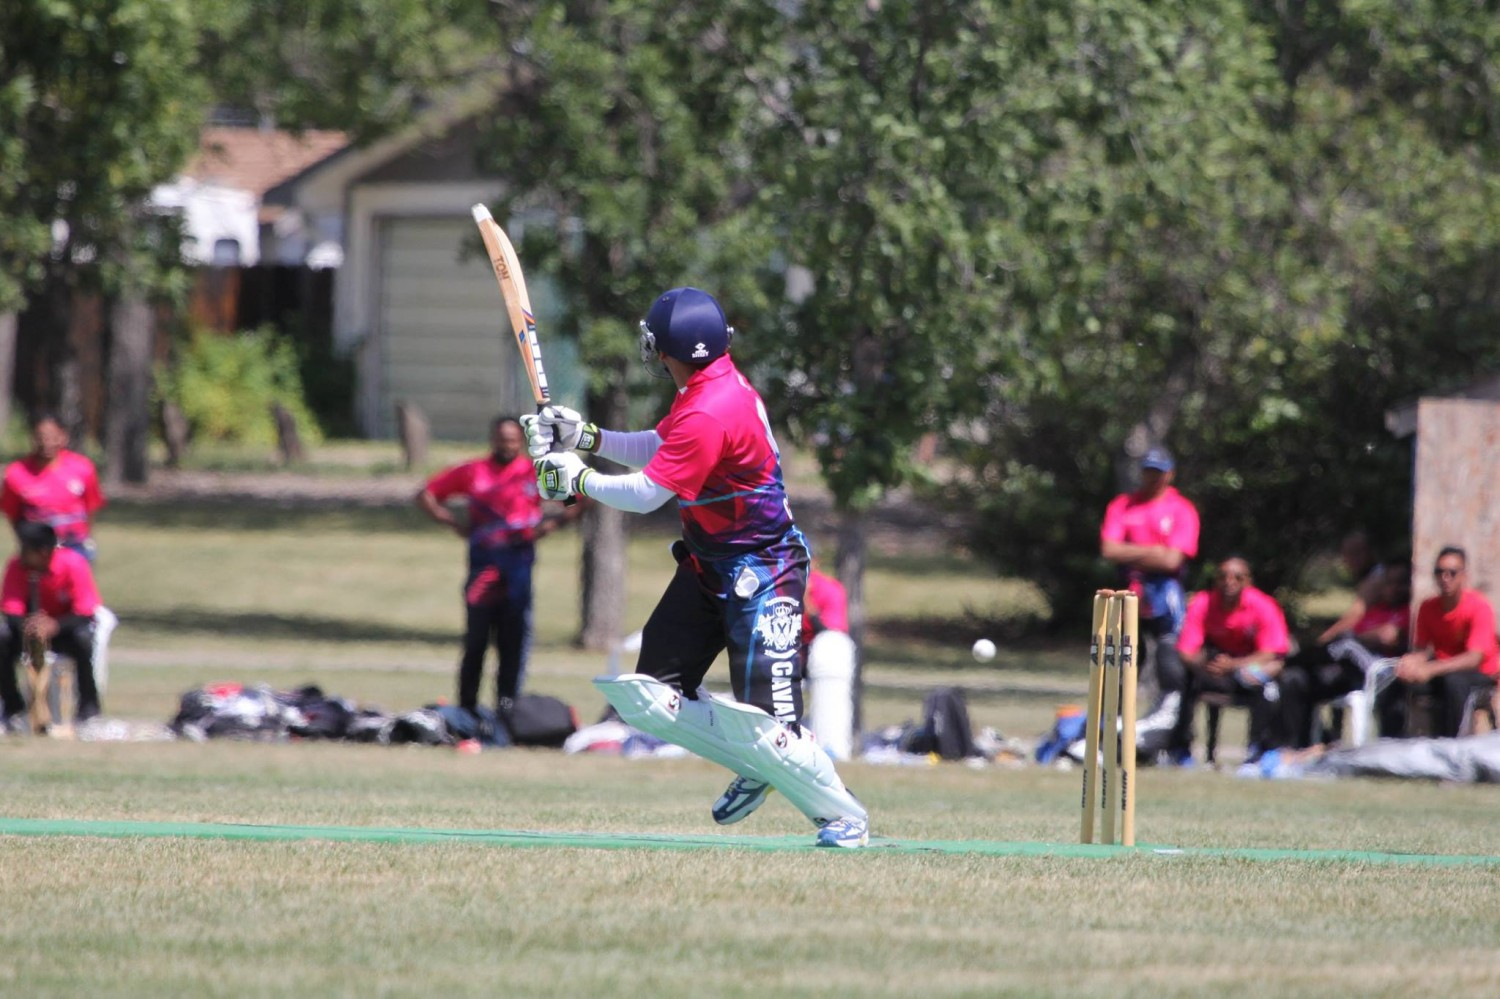 2017 Sask Cricket Schedule (Final Version) just dropped last night.